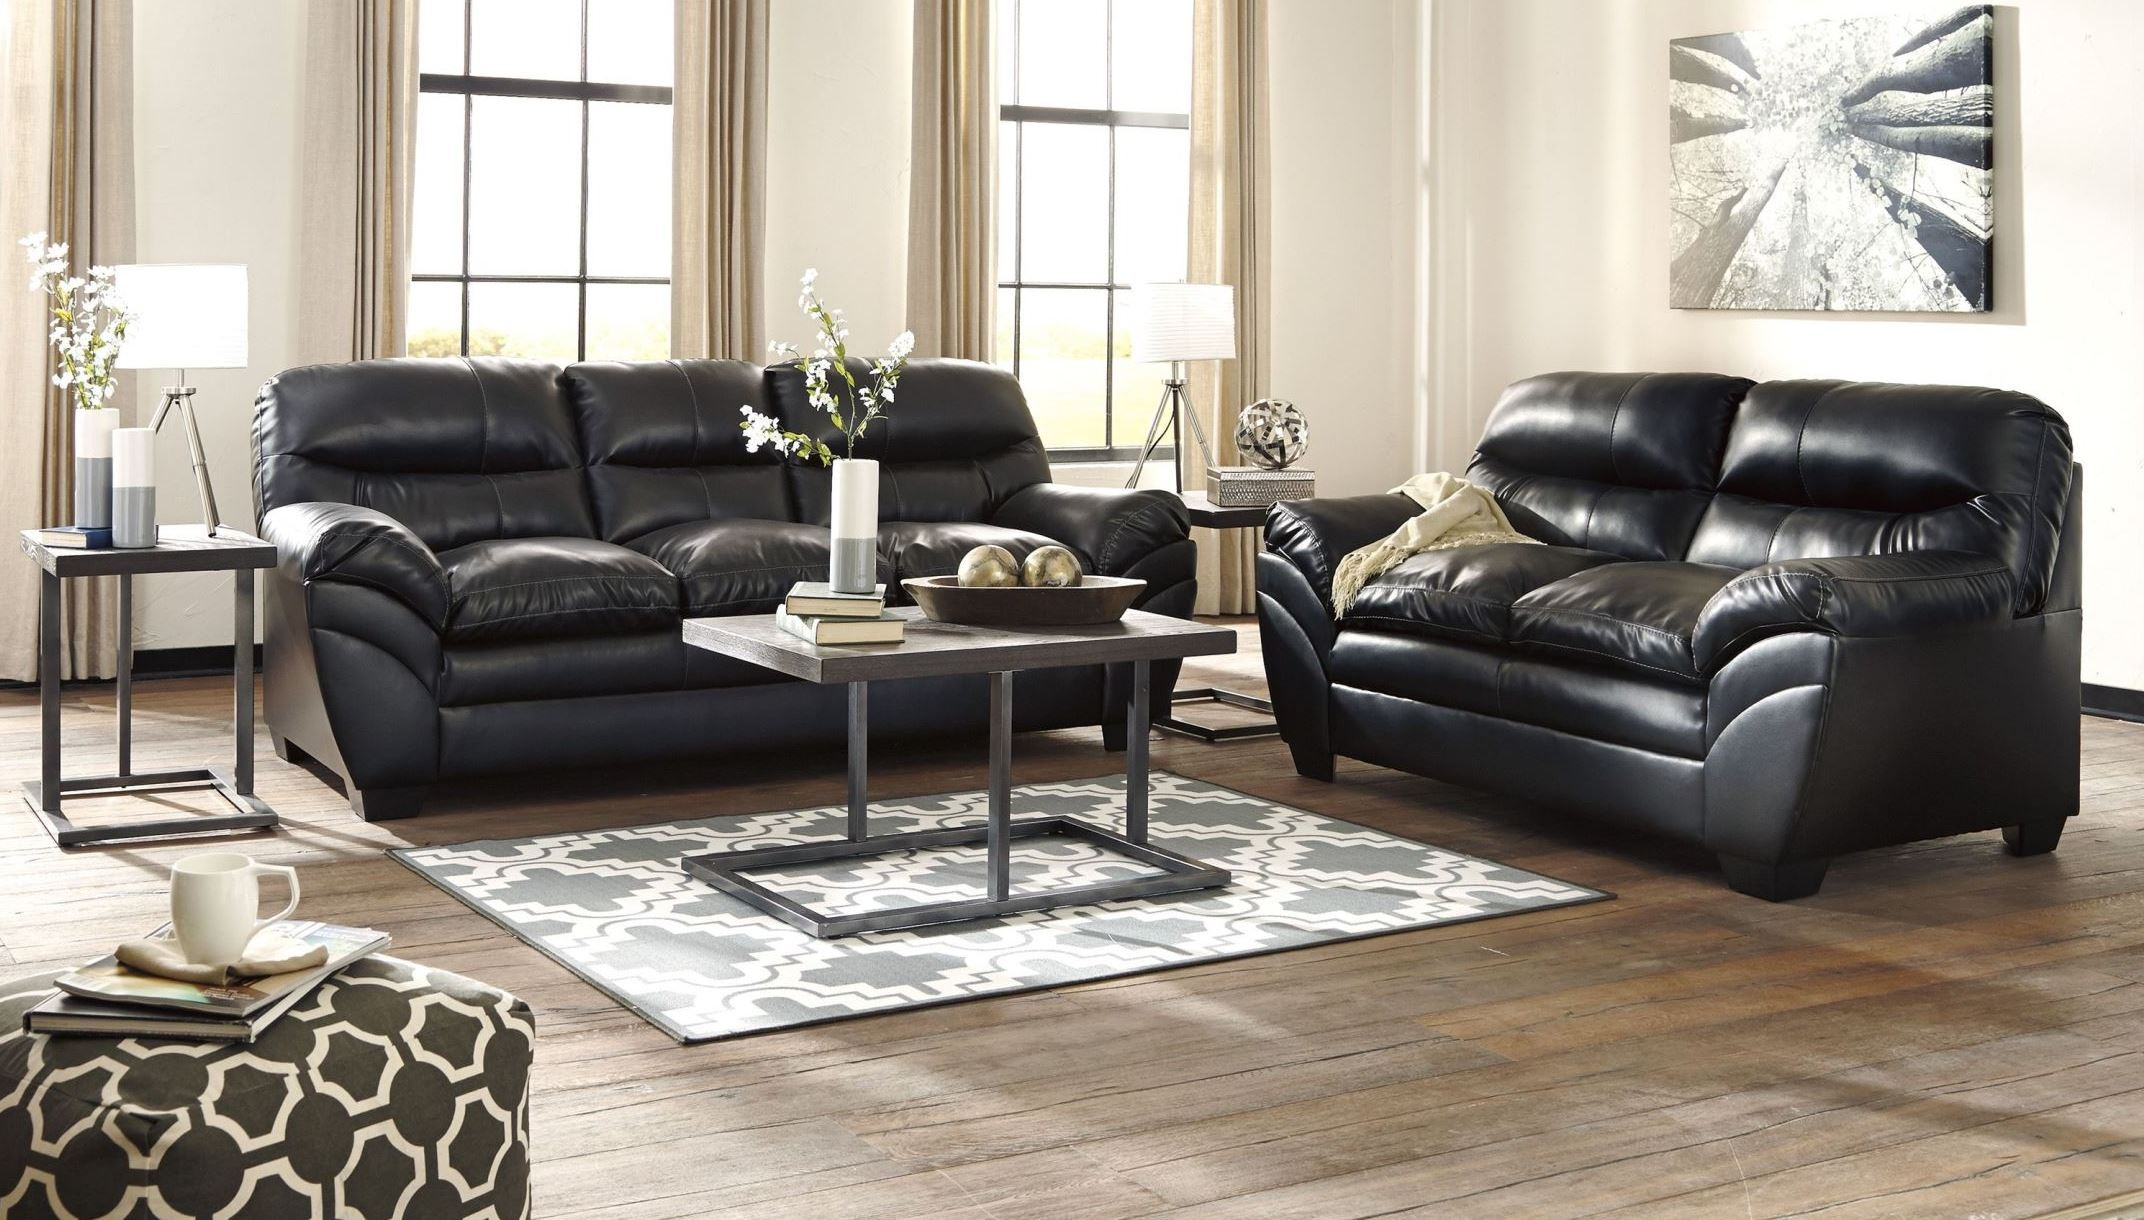 Black living room furniture sets 1 contemporary black for Black front room furniture